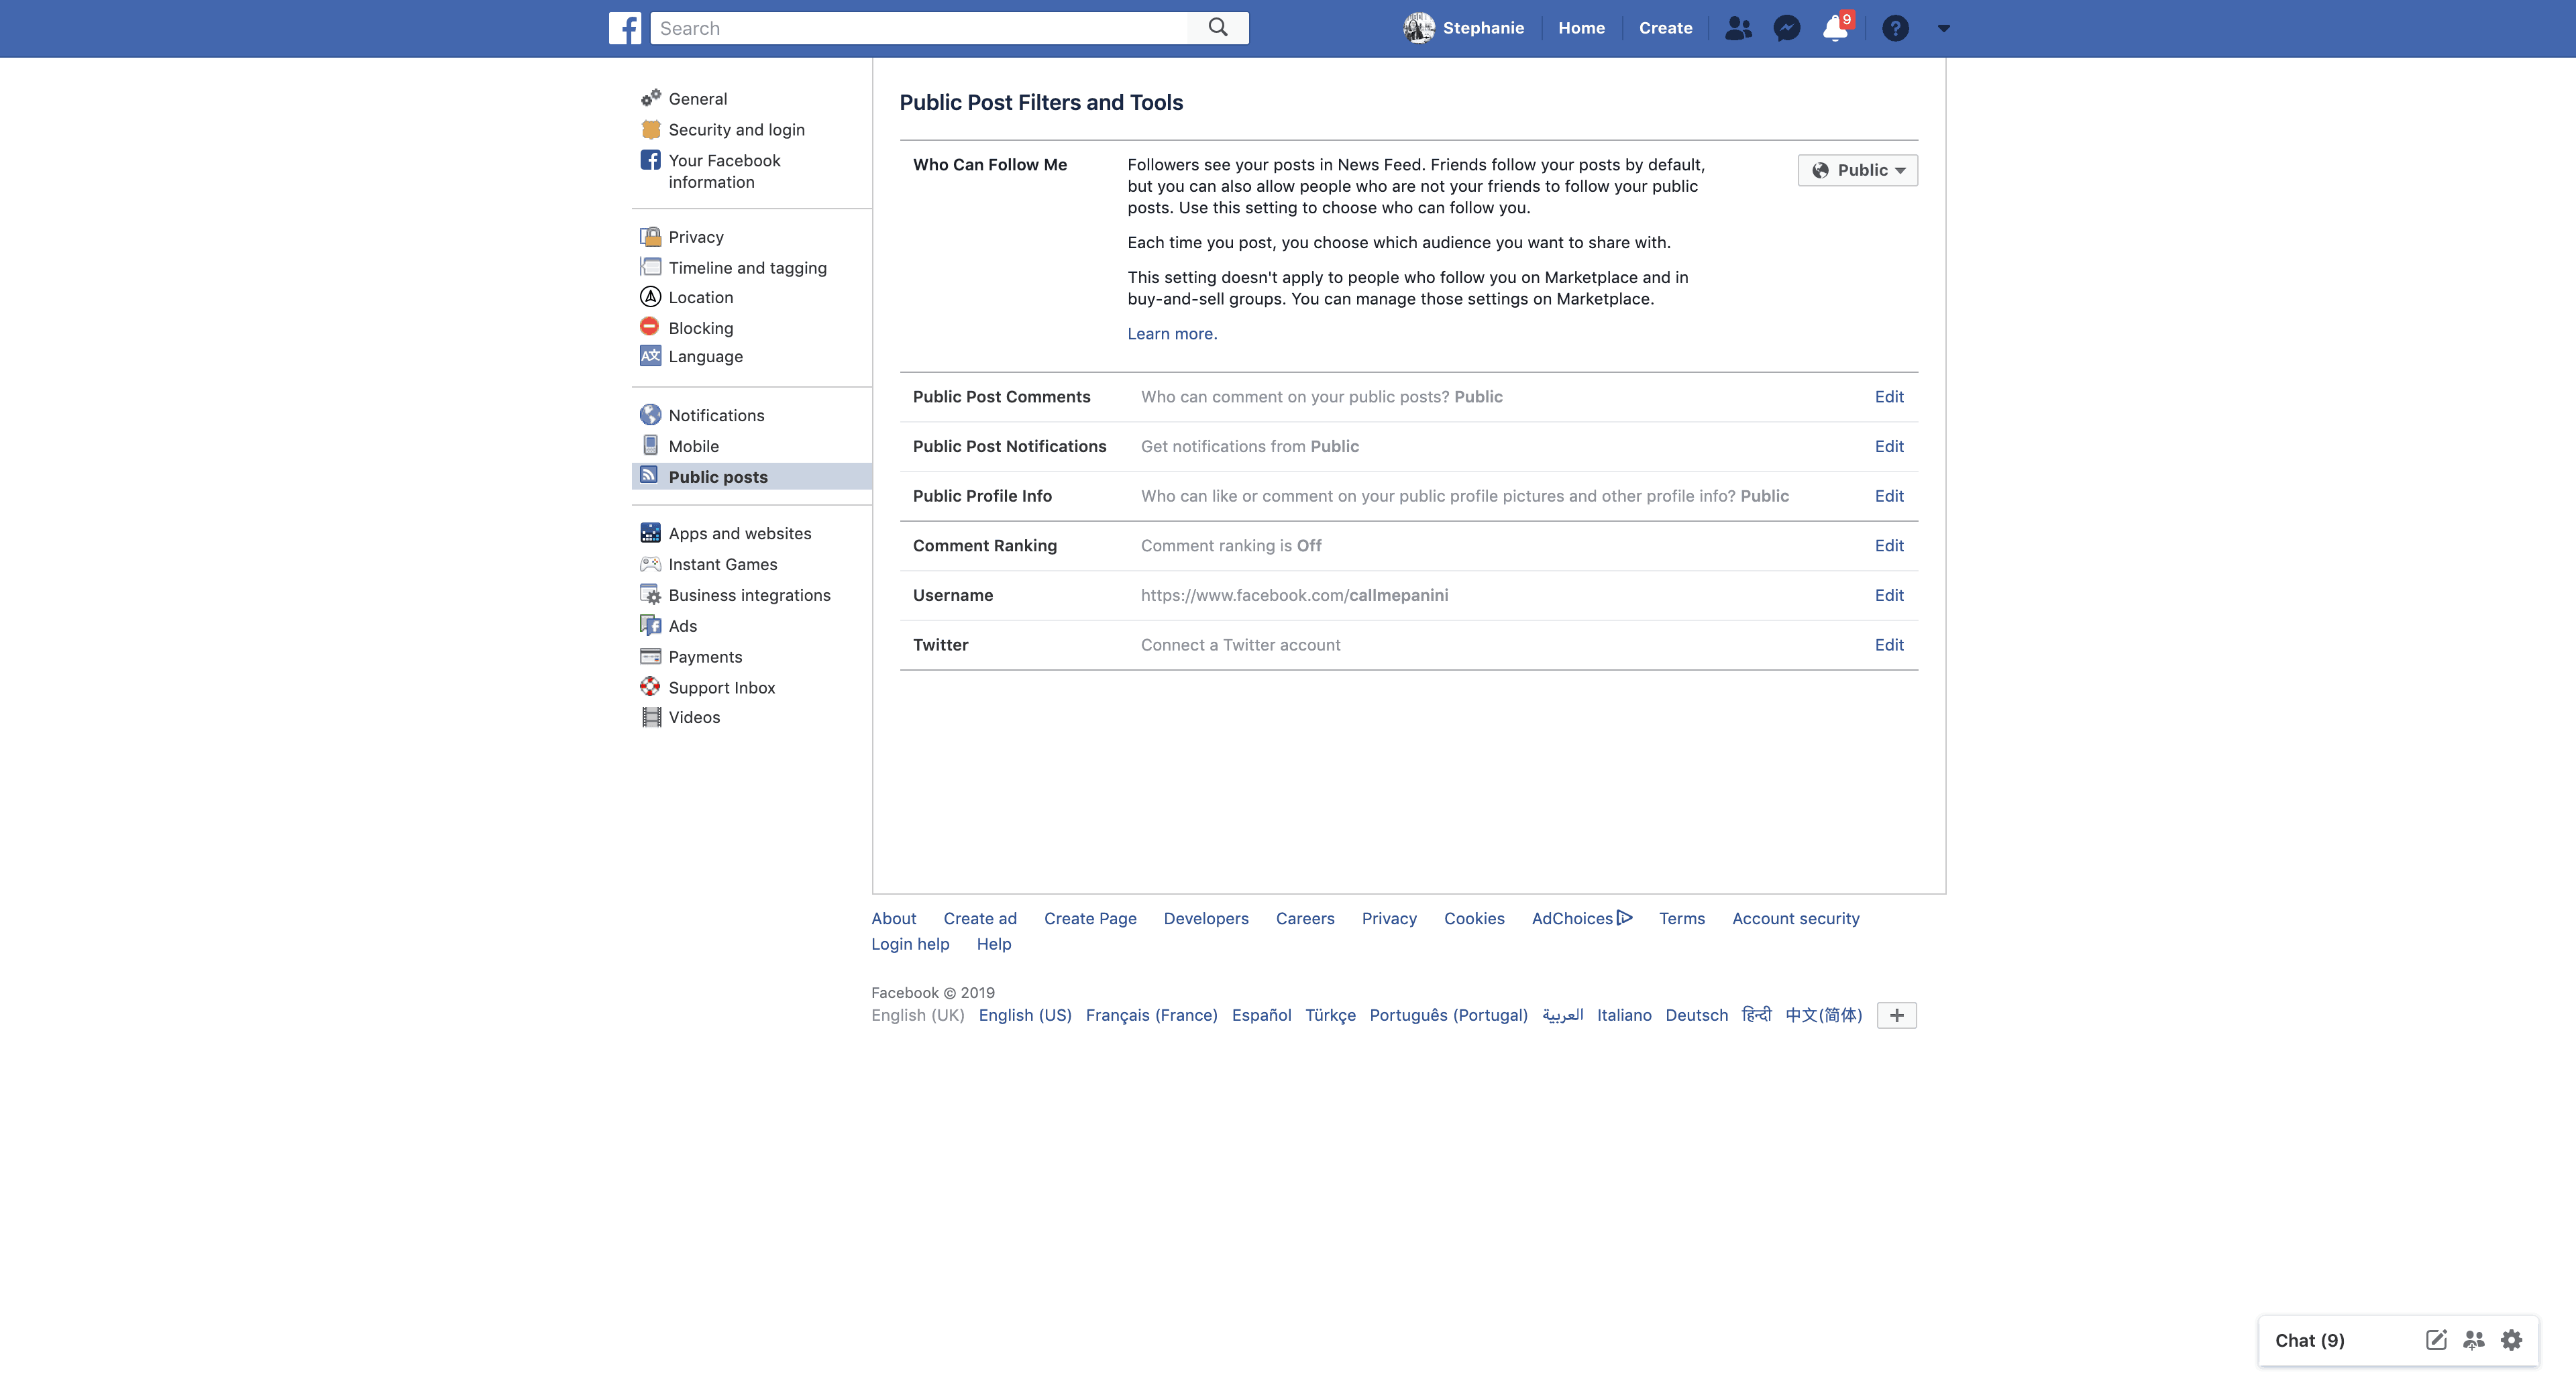 Public Post Settings By Facebook from UIGarage